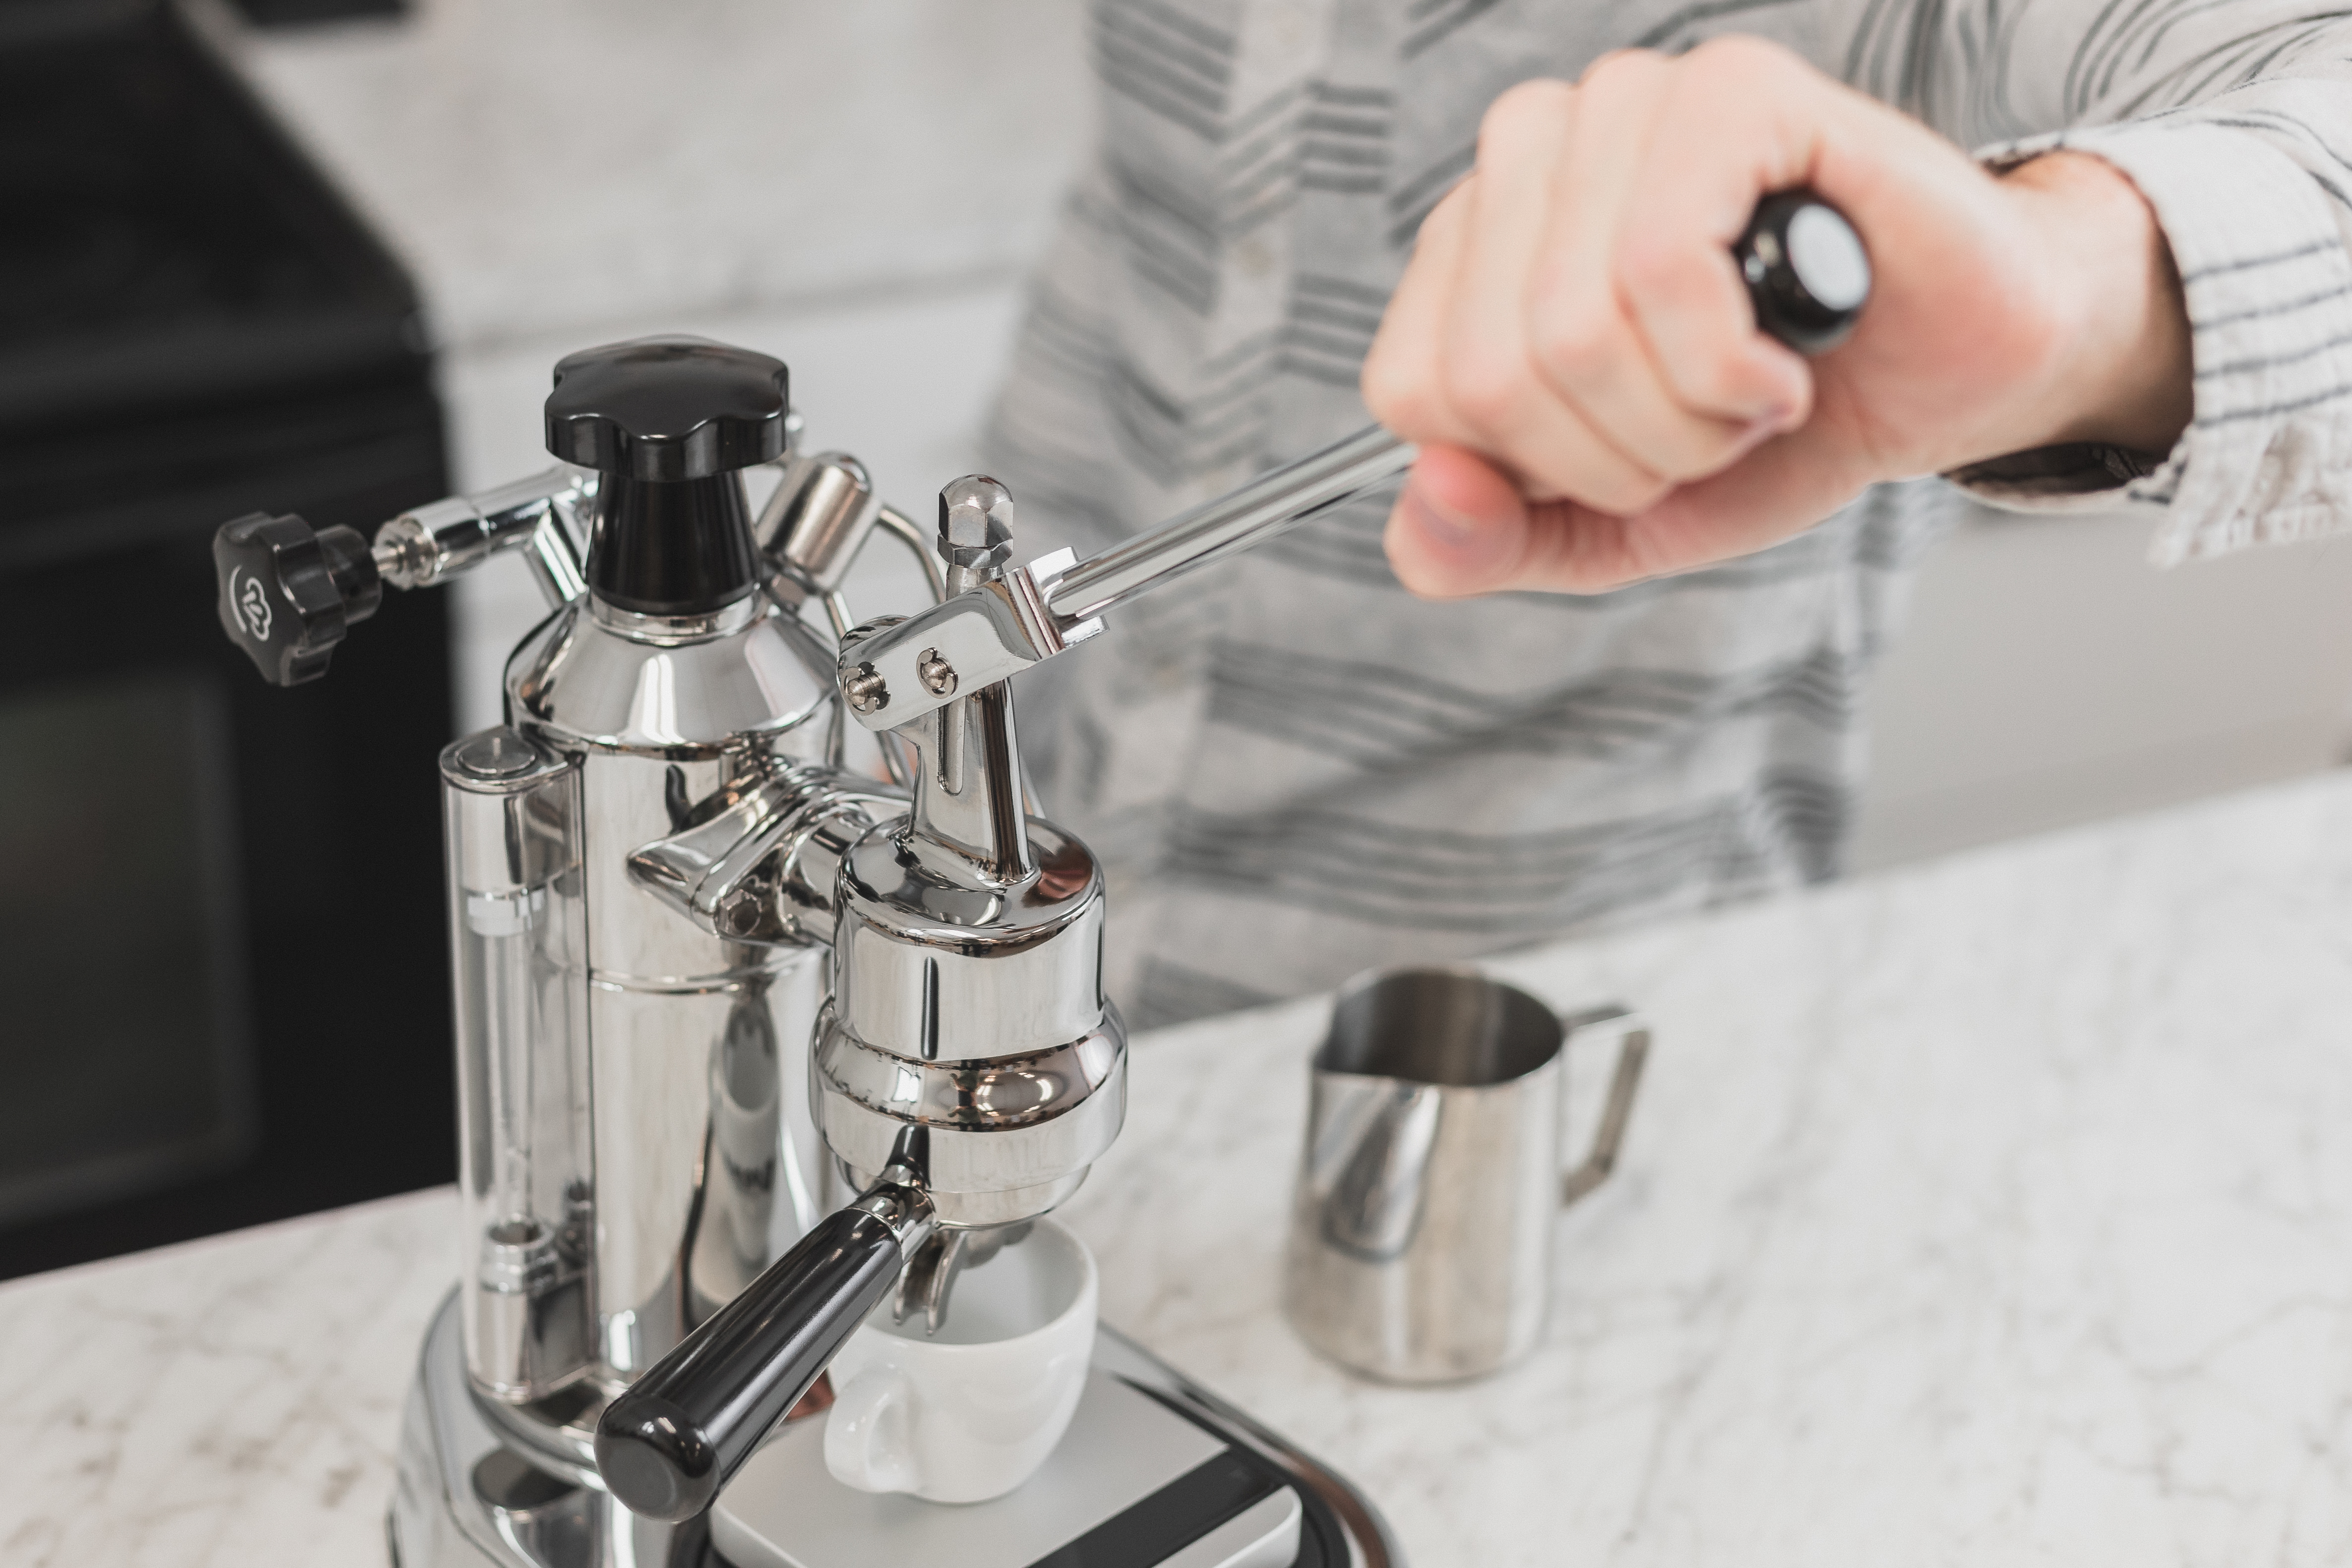 Lever being pulled on La Pavoni EPC-8